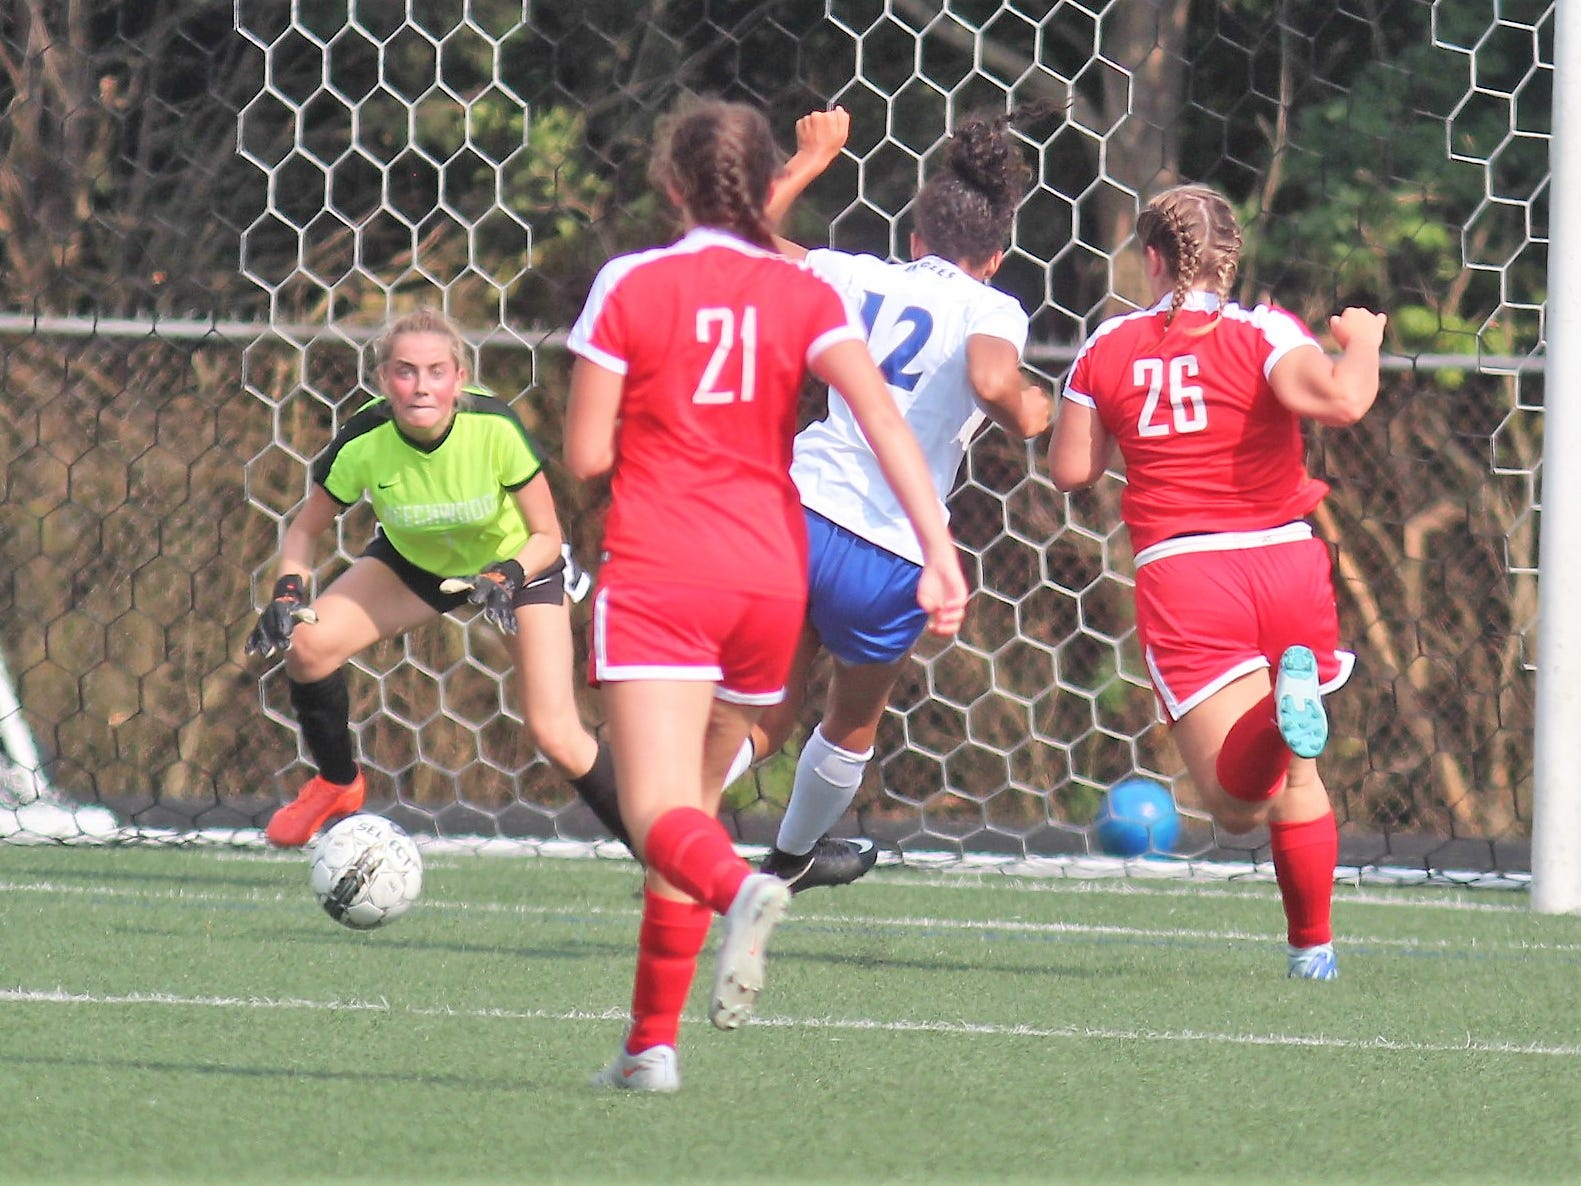 Scott senior Sophee Gregory takes a shot on goal as Beechwood plays Scott in girls Soccerama scrimmage Aug. 10, 2018 at Tower Park, Fort Thomas.